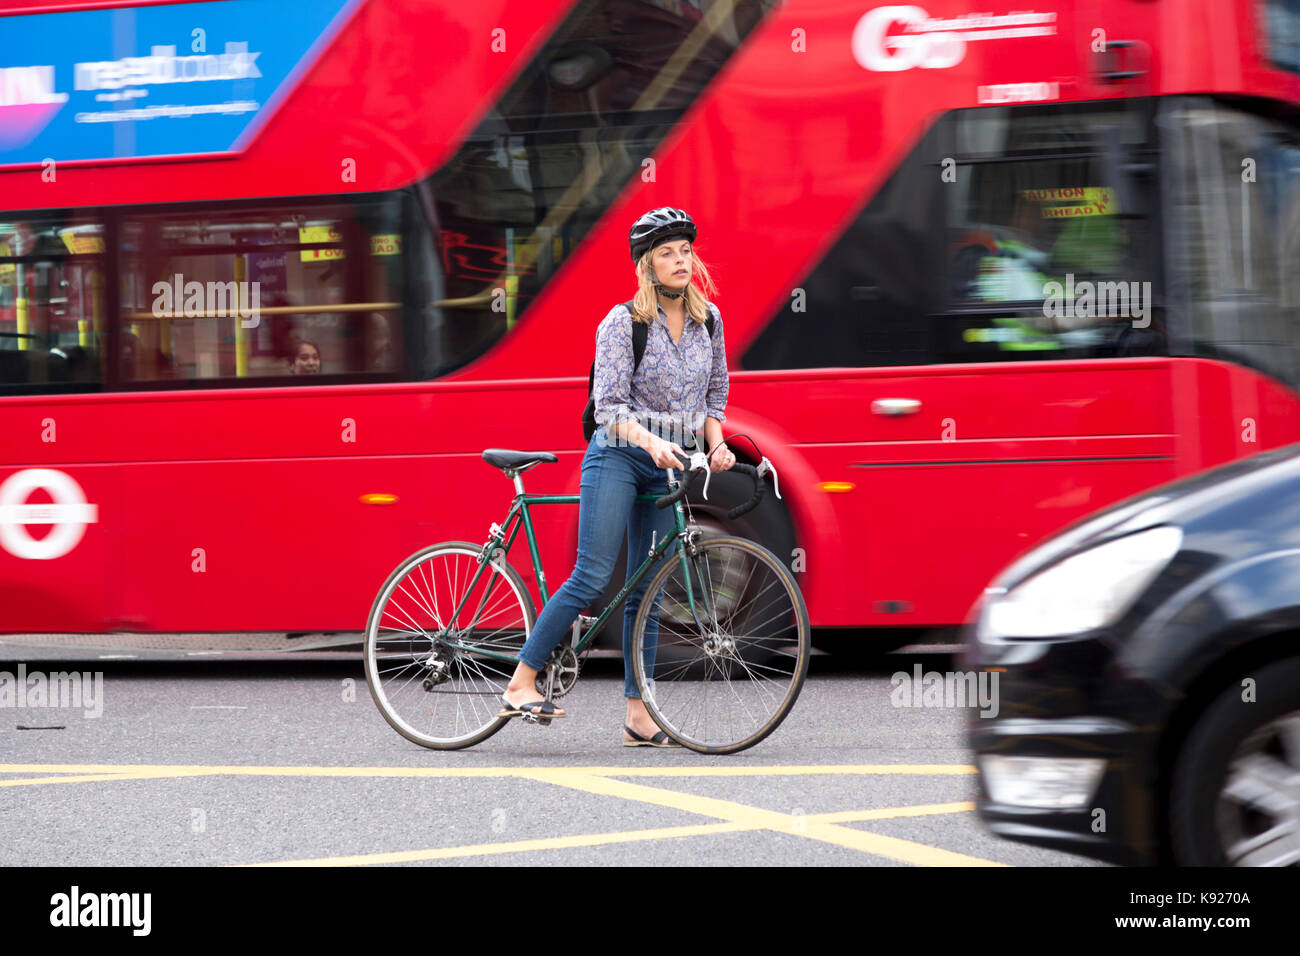 London, UK - August 19, 2017: London traffic is a threat for bicycle users - Stock Image